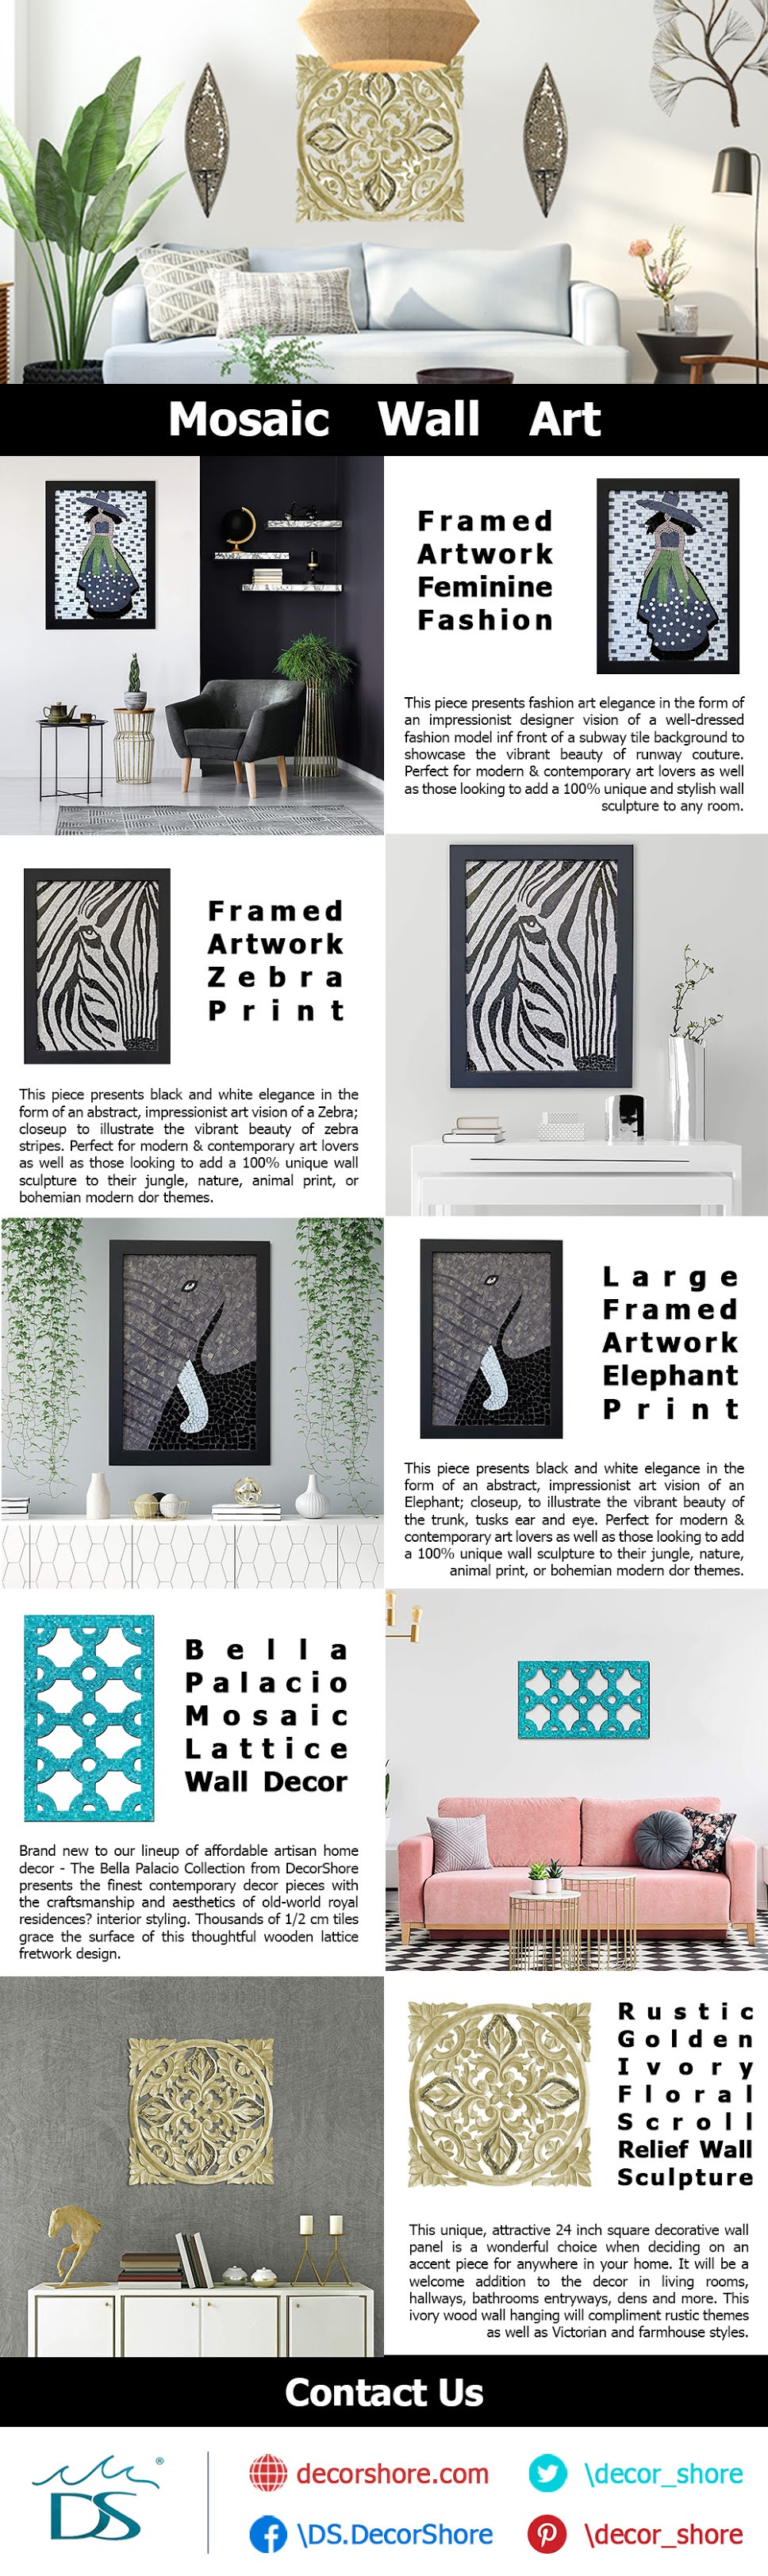 Mosaic Wall Art For Home Decor #infographic #Home Decor #infographics #Wall Art #Home Improvement